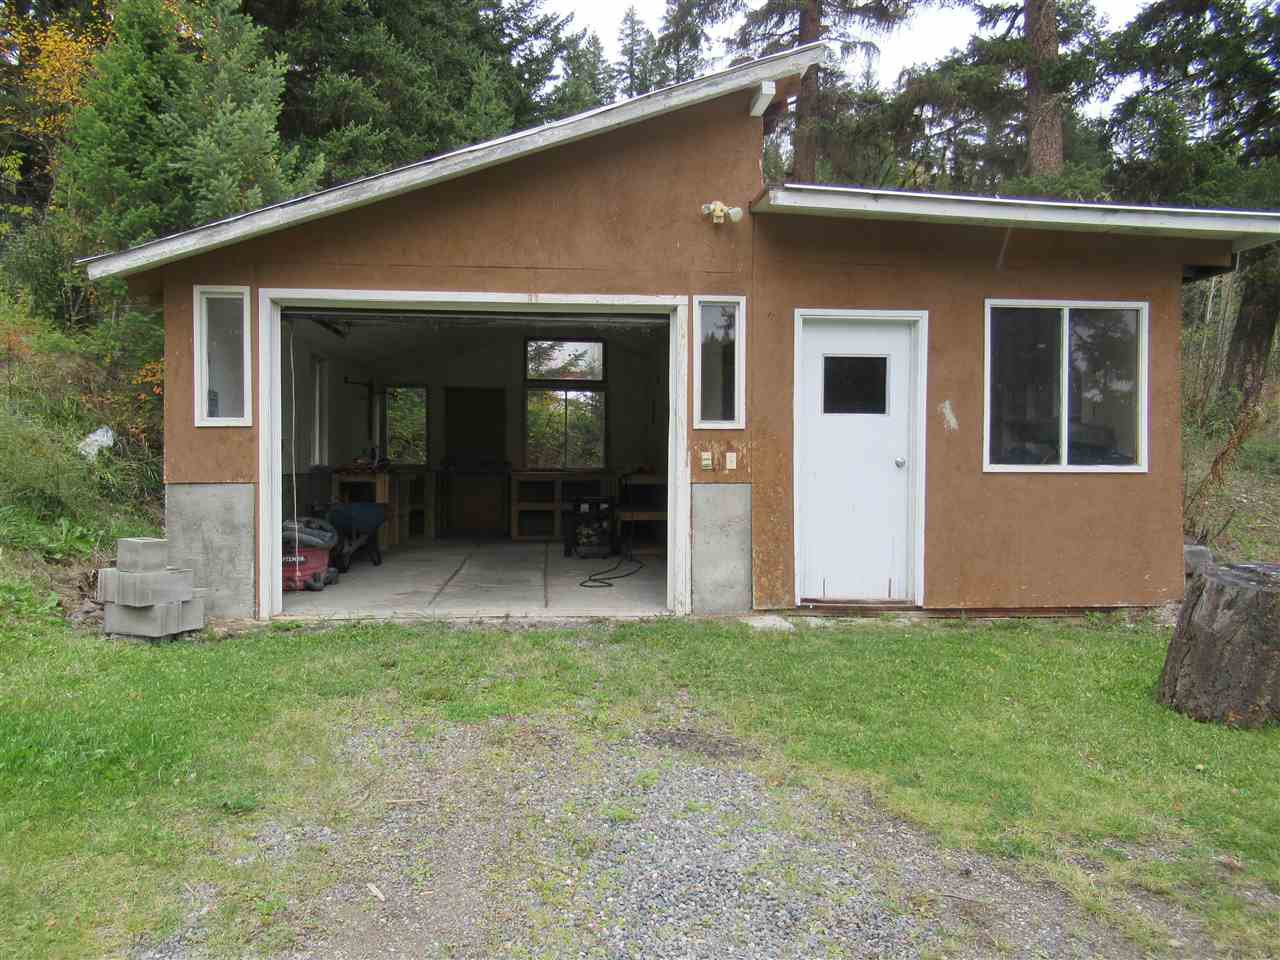 Photo 14: Photos: 3974 SCHARF Road in Williams Lake: Williams Lake - Rural North House for sale (Williams Lake (Zone 27))  : MLS®# R2409567